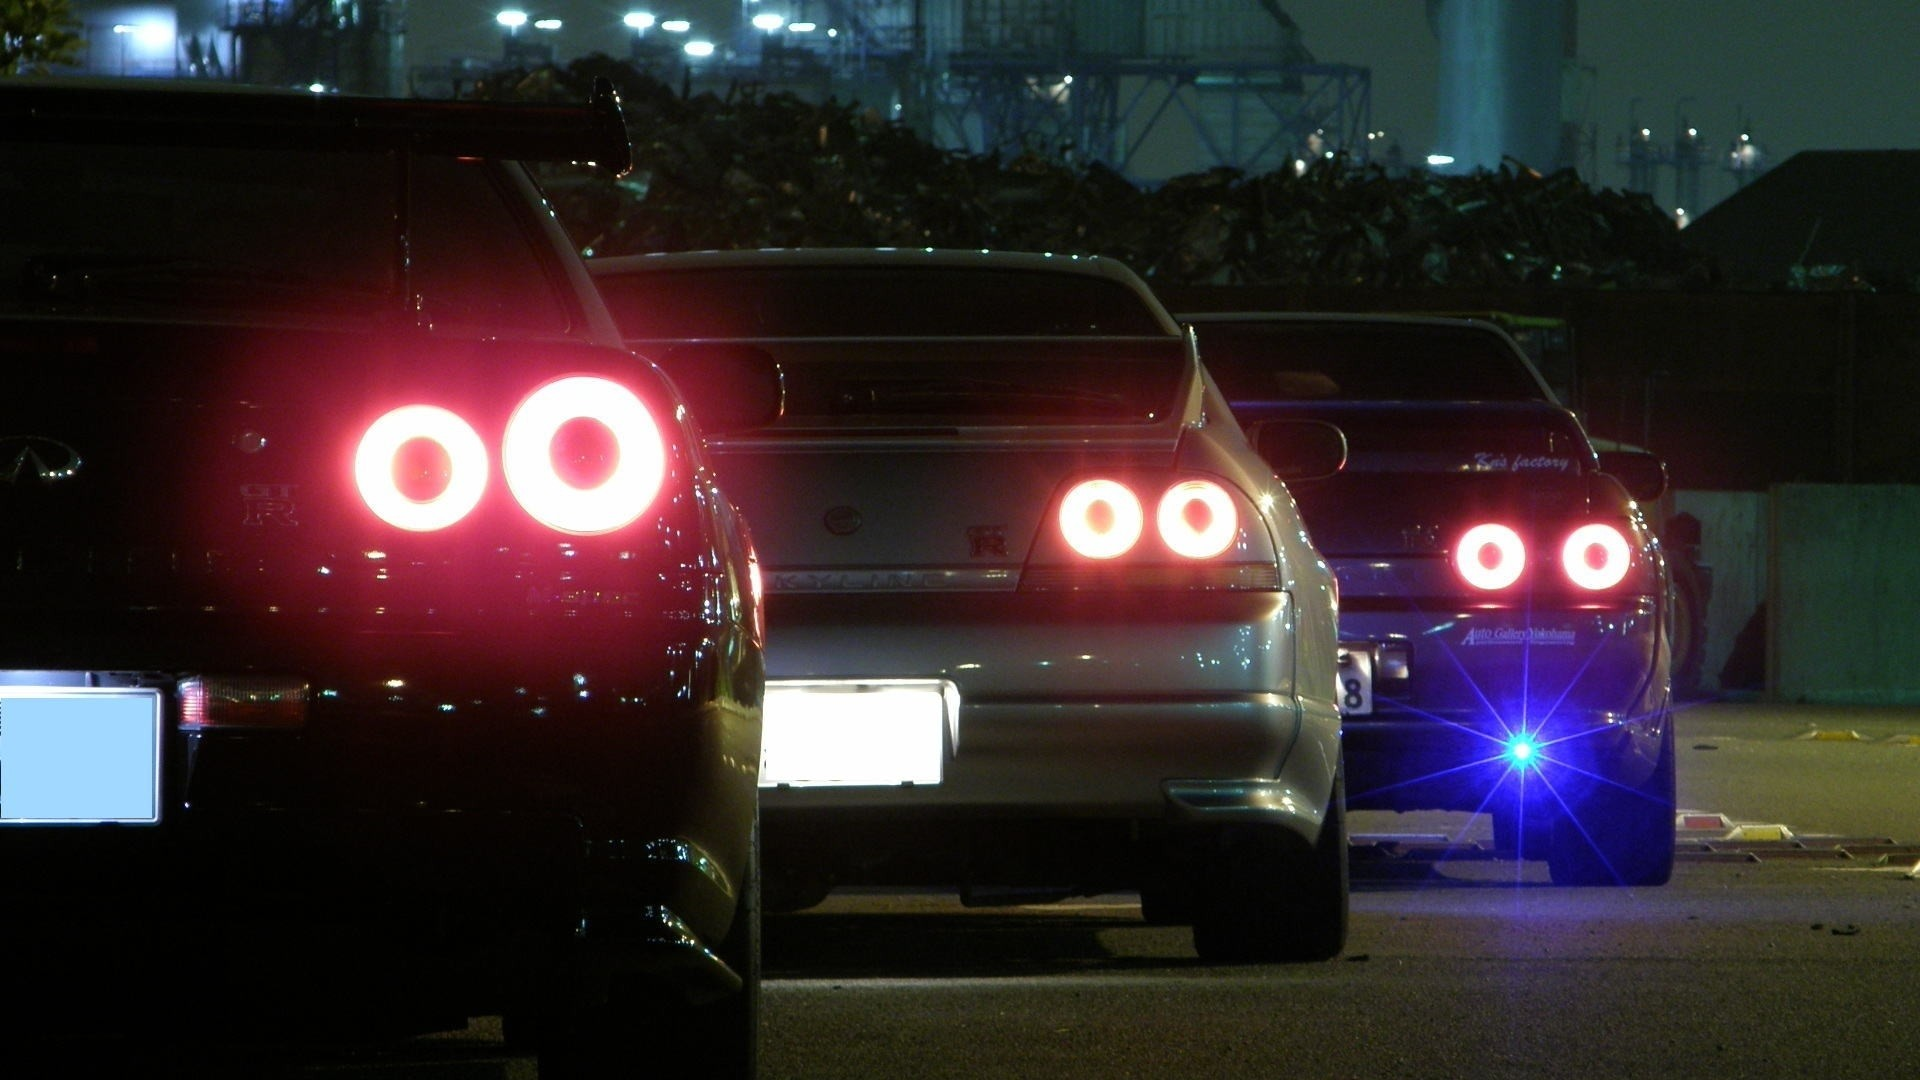 cars backview vehicles nissan skyline r32 gtr jdm nissan skyline r33 gtr  tuning wallpaper